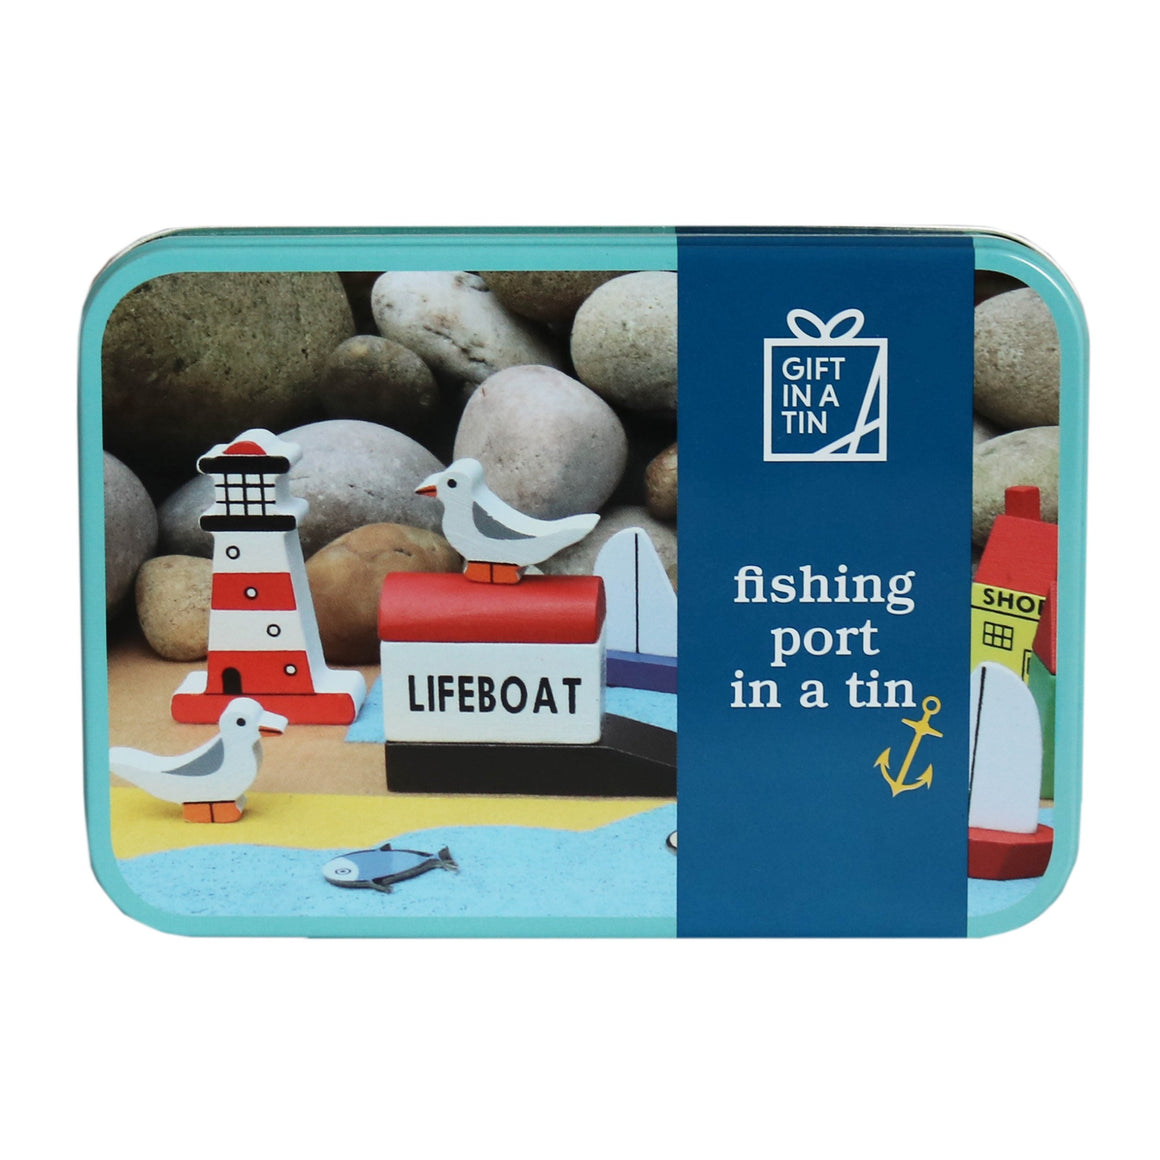 Fishing Port Gift in a Tin